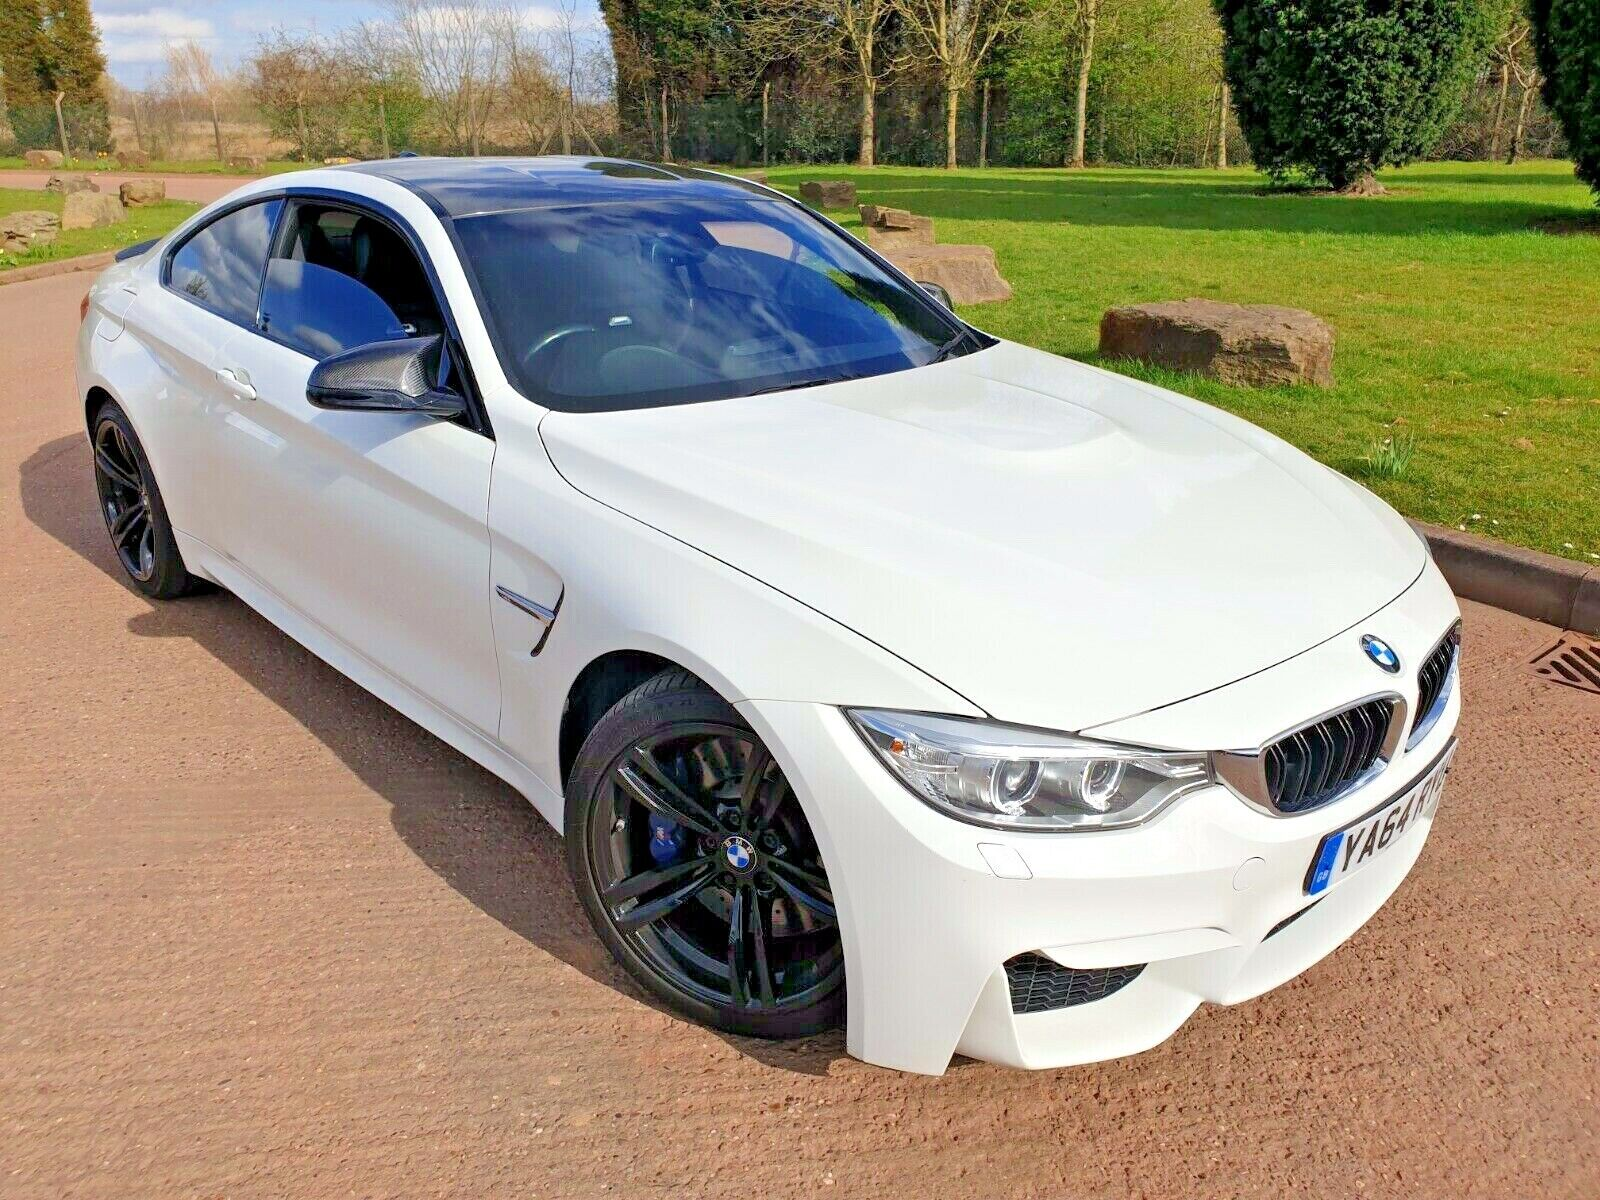 2015 WHITE BMW M4 COUPE 3.0 BITURBO SEMI AUTO M DCT 40K LOW MILES